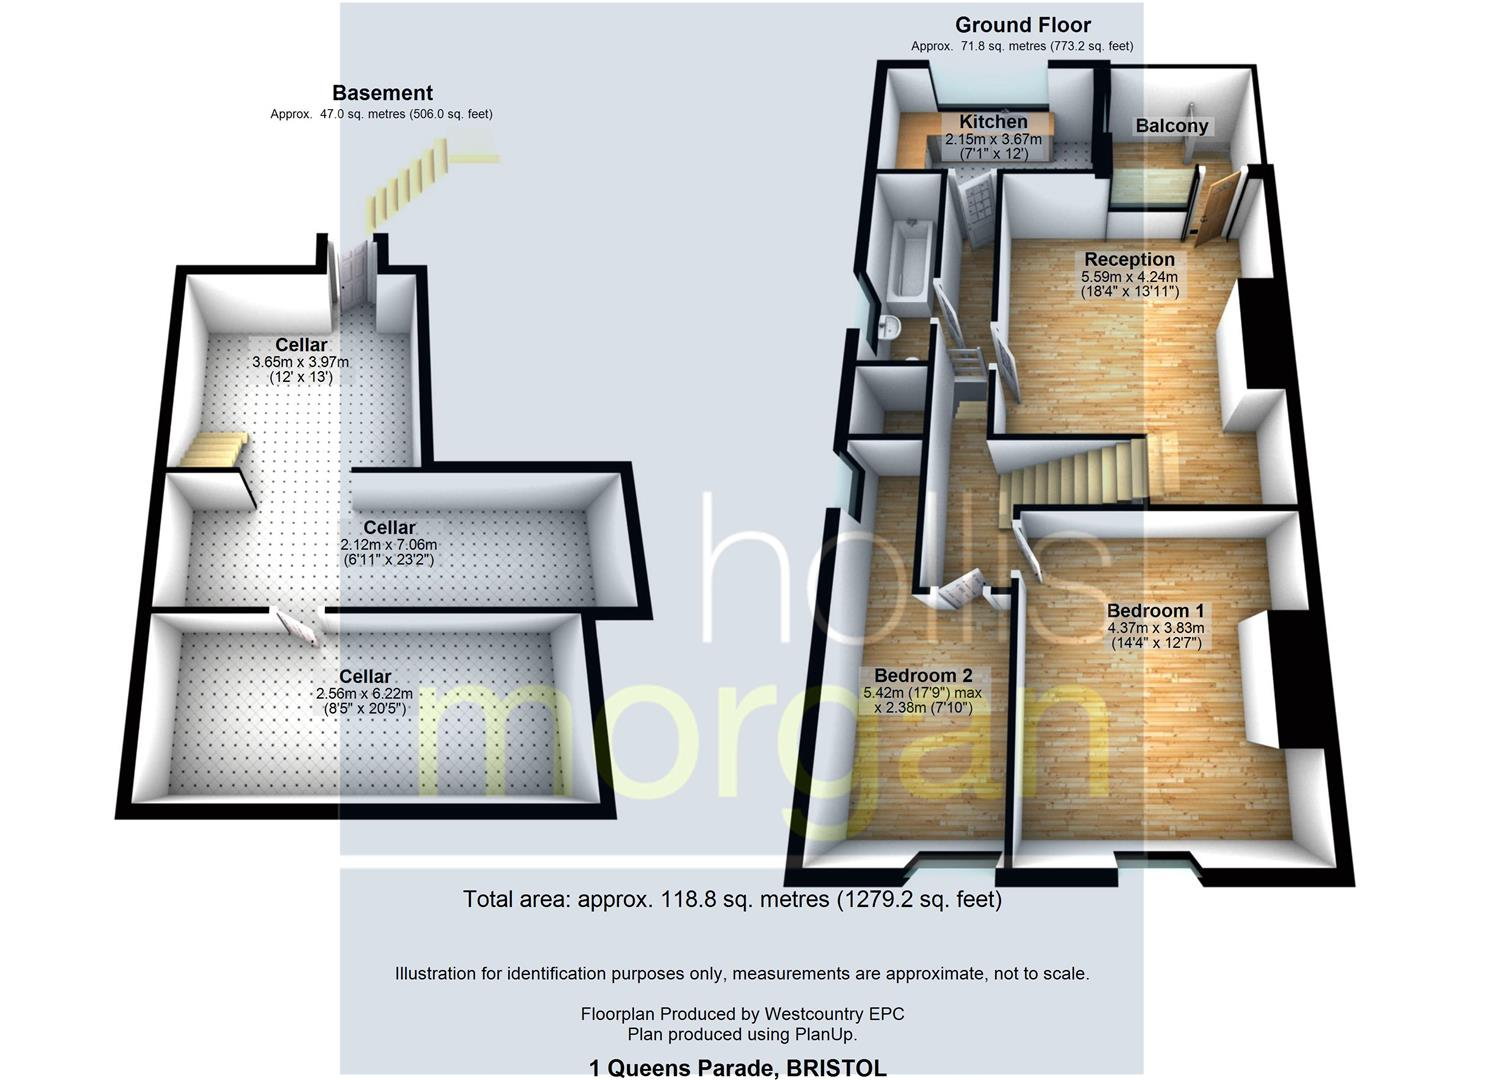 Floorplans For Garden Flat & Basement @ Queens Parade BS1